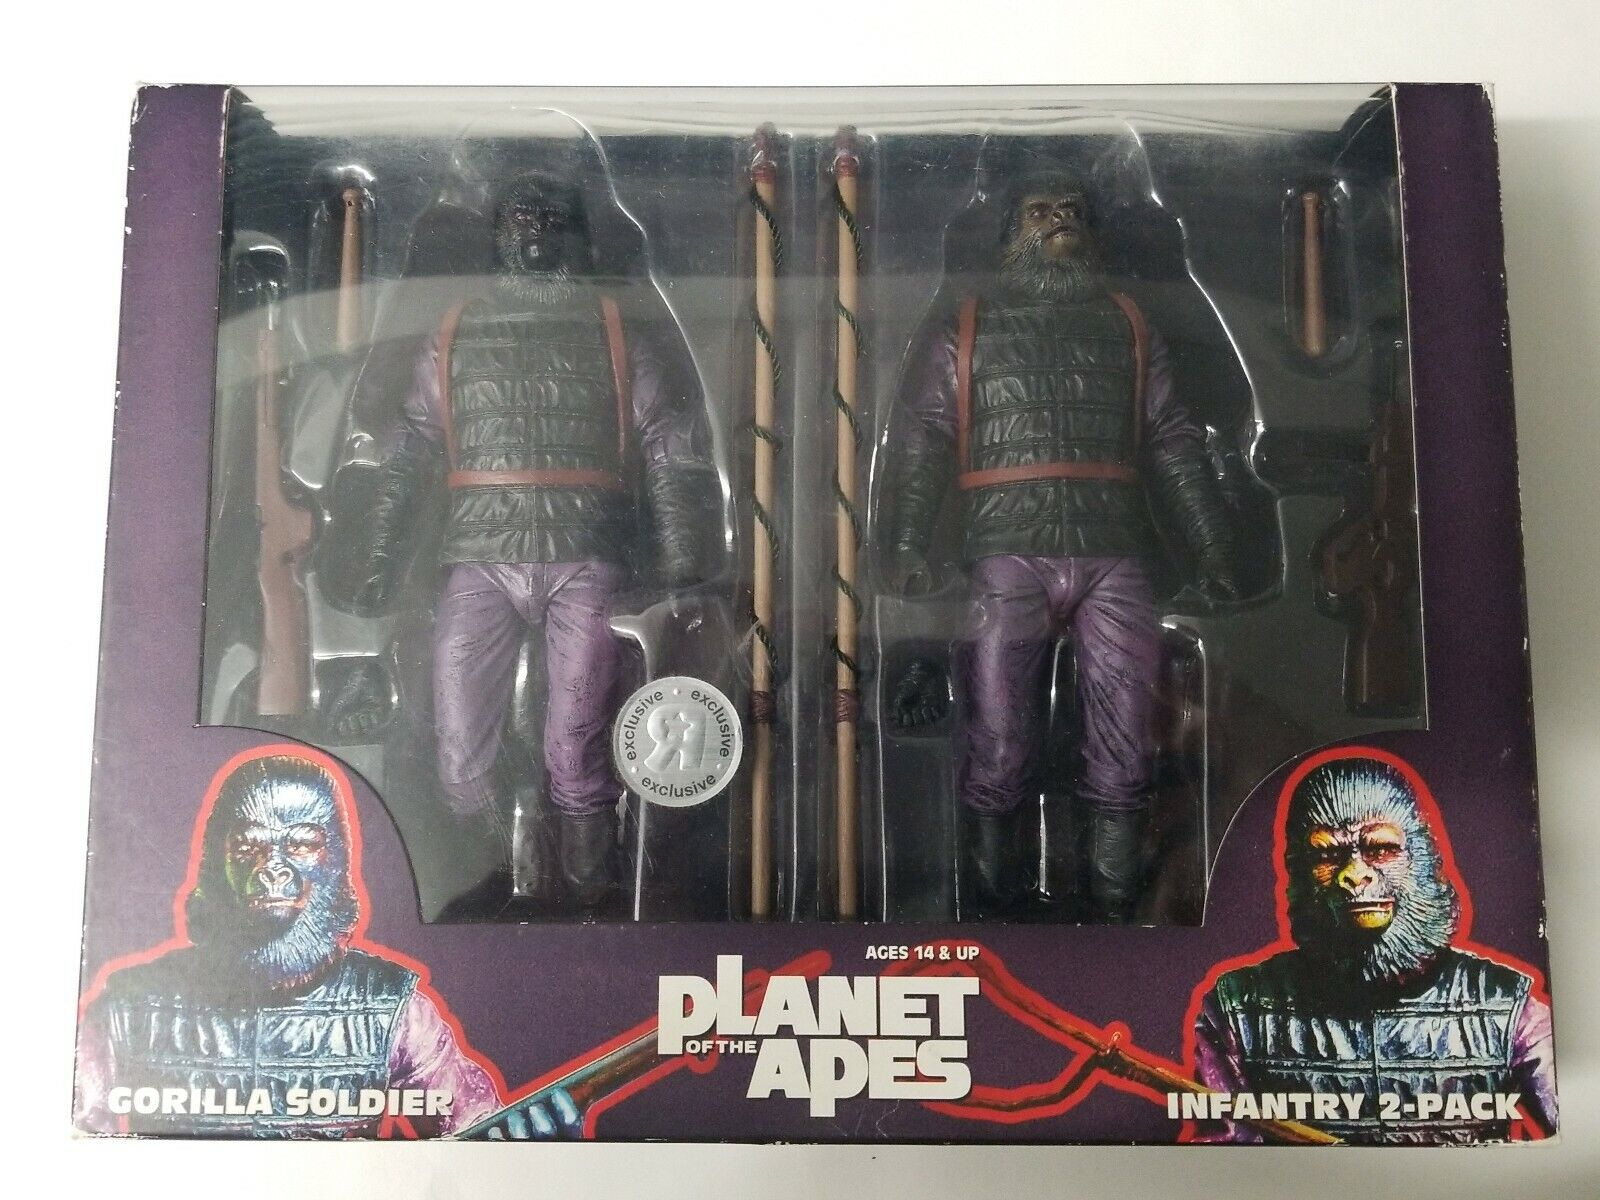 NECA PLANET OF THE APES INFANTRY 2 PACK GORILLA SOLDIERS 7 azione cifraS